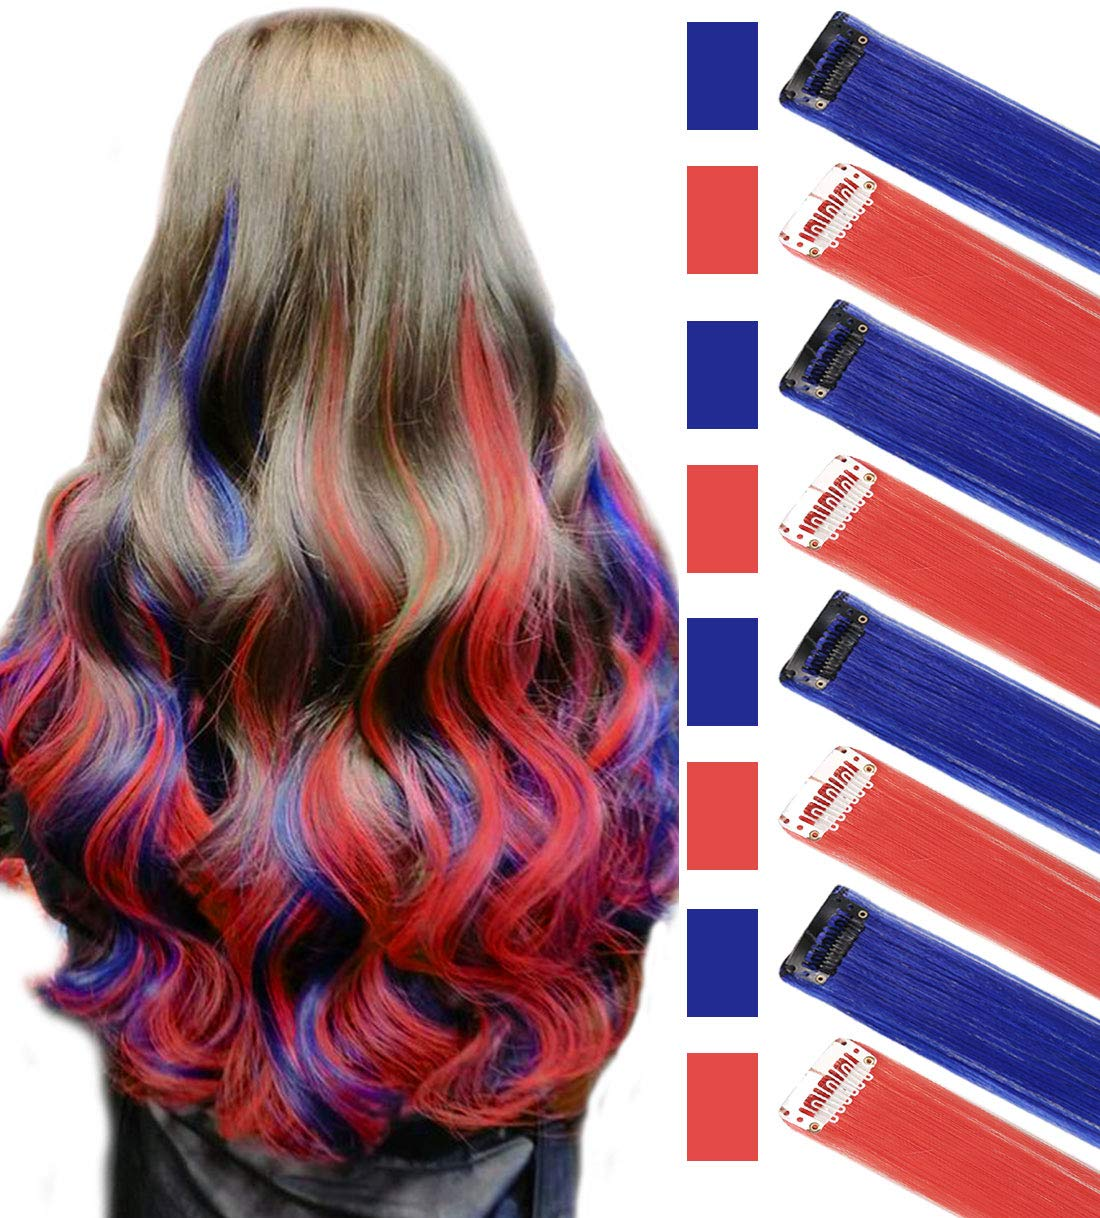 JCM Blue&Red Multi-Colors Party Highlights Straight Clip in/on Colored Hair Streak Synthetic Hairpieces(Blue Red) by JCM